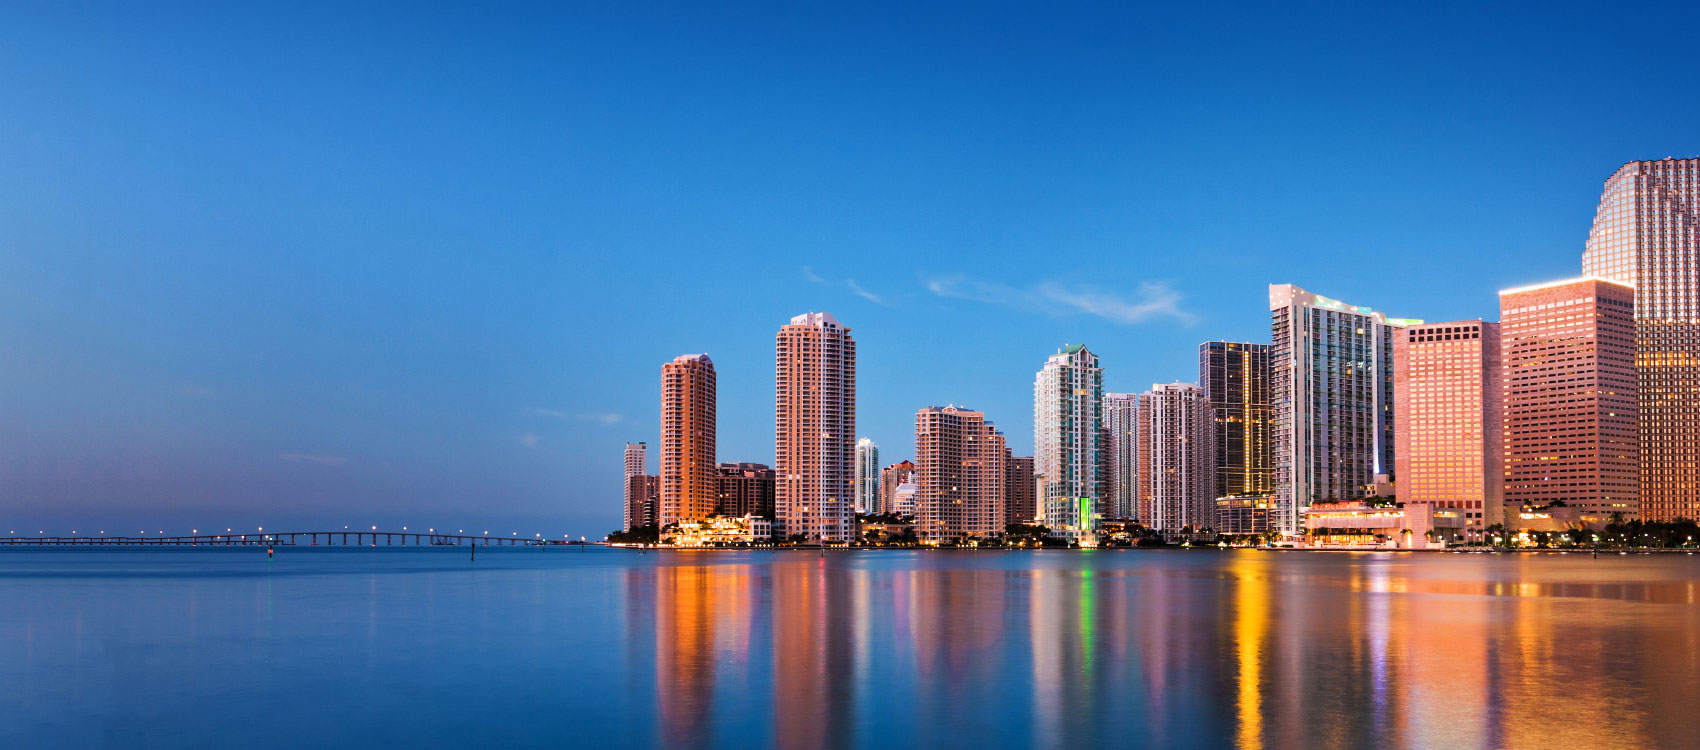 Relocating to Miami? Getting to know your neighbors and fit into the community setting will be a breeze. Here's how.